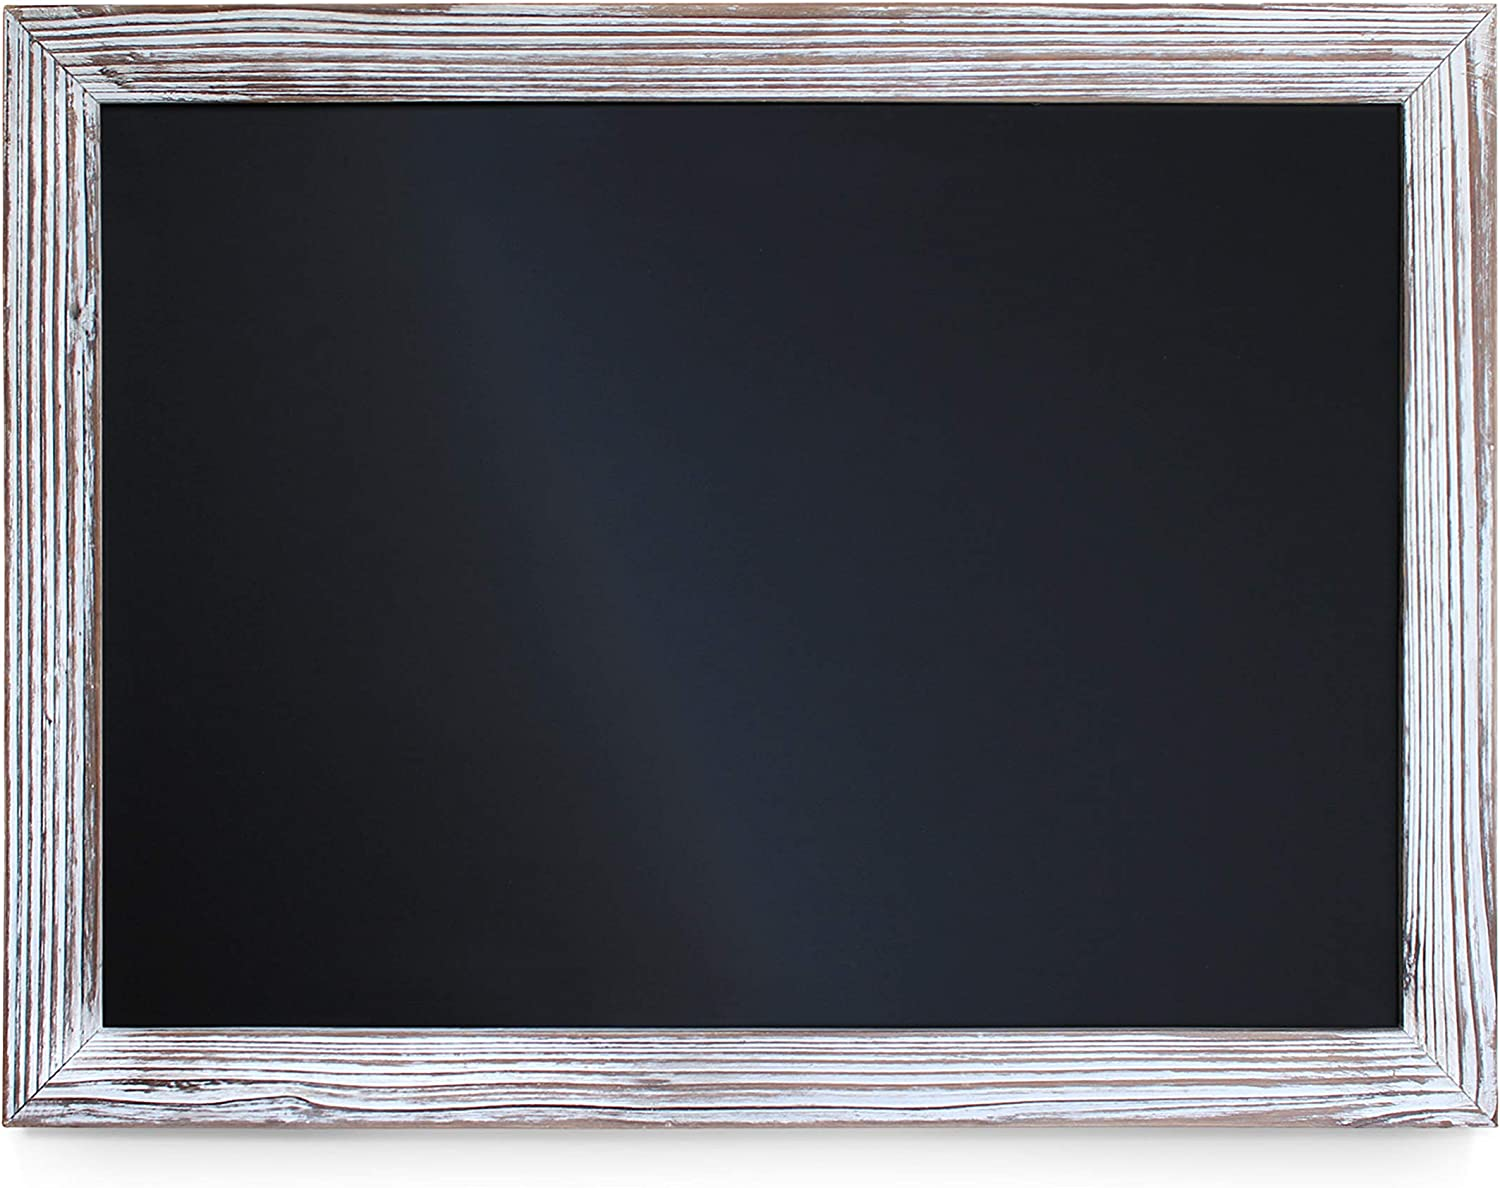 """Rustic Whitewashed Magnetic Wall Chalkboard, Large Size 18"""" x 24"""", Framed Chalkboard - Decorative Magnet Board Great for Kitchen Decor, Weddings, Restaurant Menus and More! … (18"""" x 24"""")…: Office Products"""